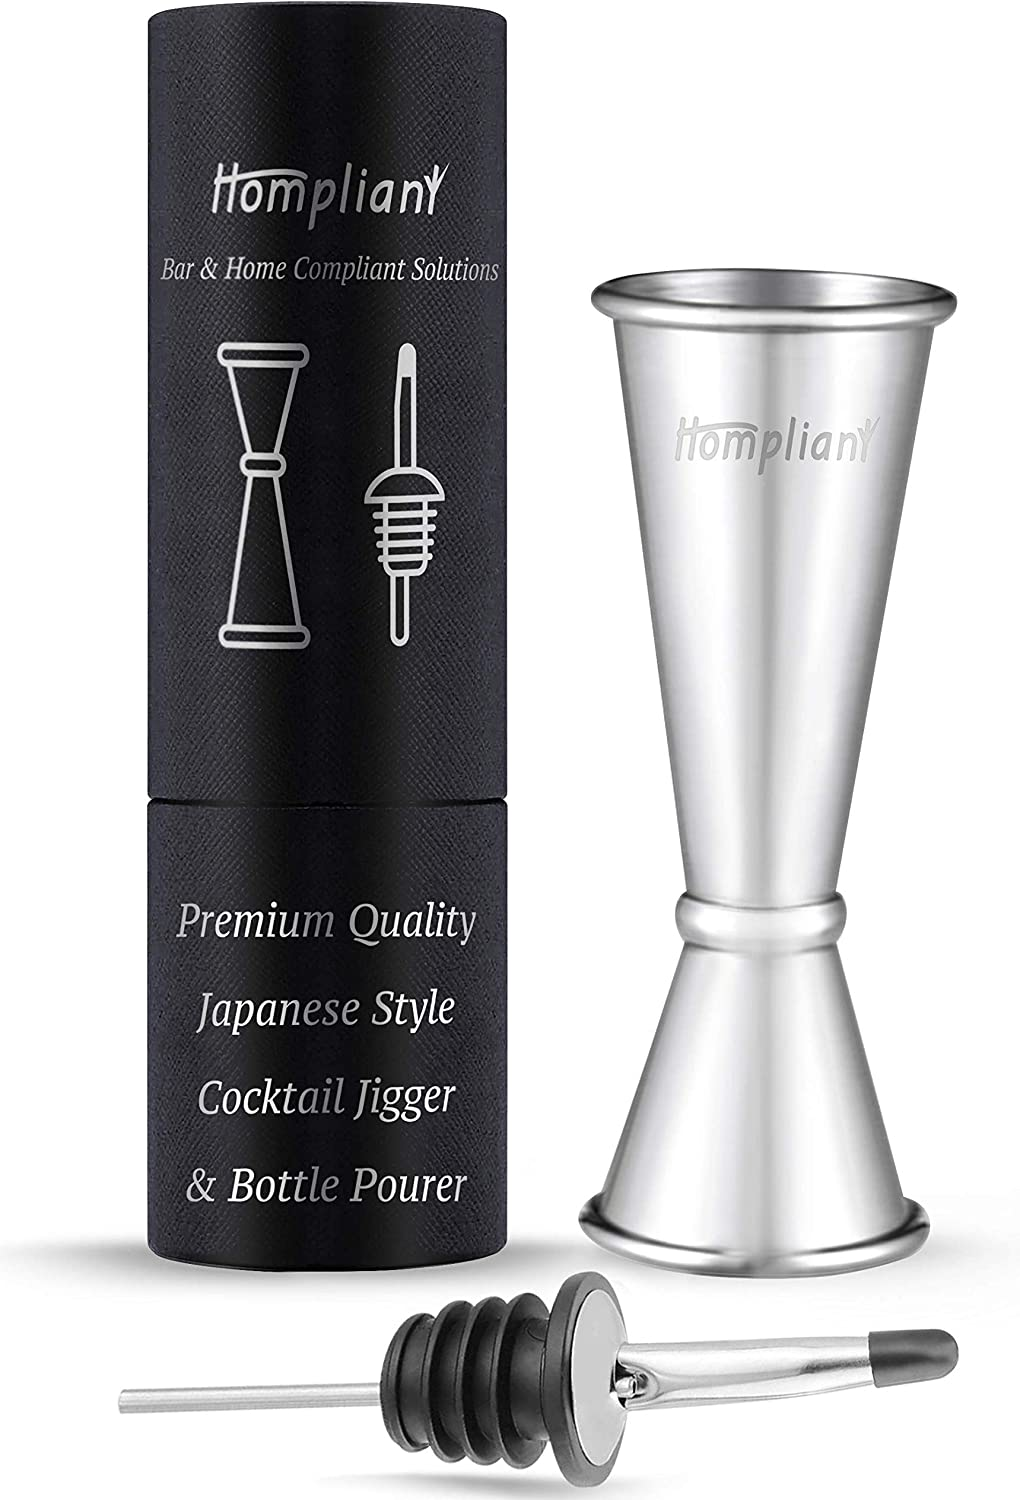 // 1oz Premium Japanese Stainless Steel Slim Double Cocktail Bar Jigger by VinoBravo with measurements inside 2oz Barware Tool for Home Bars and Professional Bartending Kits Black